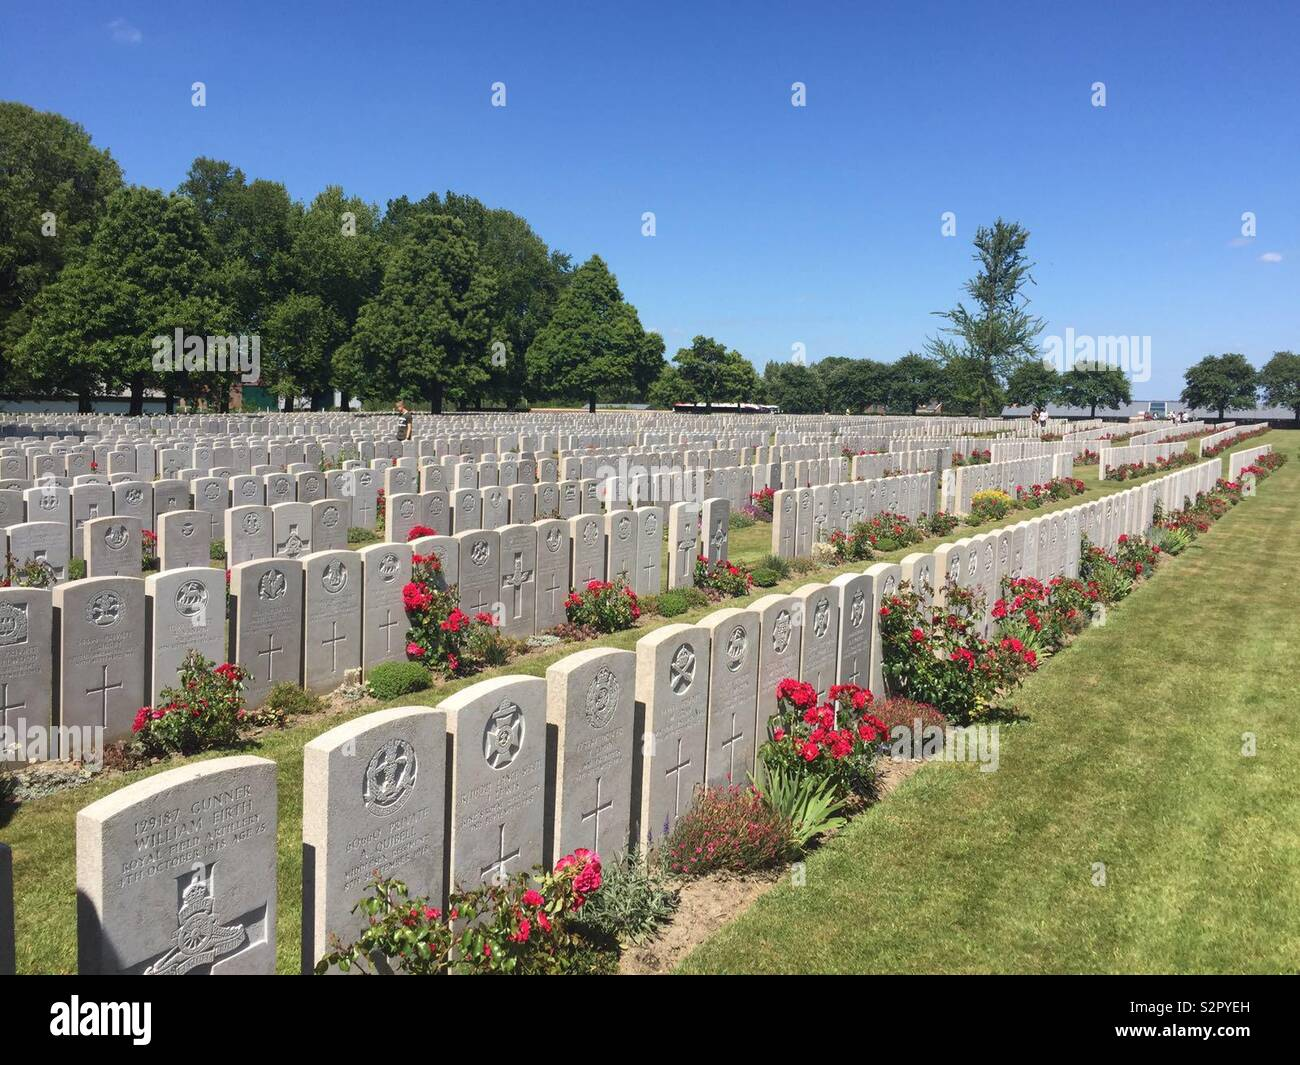 Commonwealth War Graves of those killed in World War I, Belgium - Stock Image